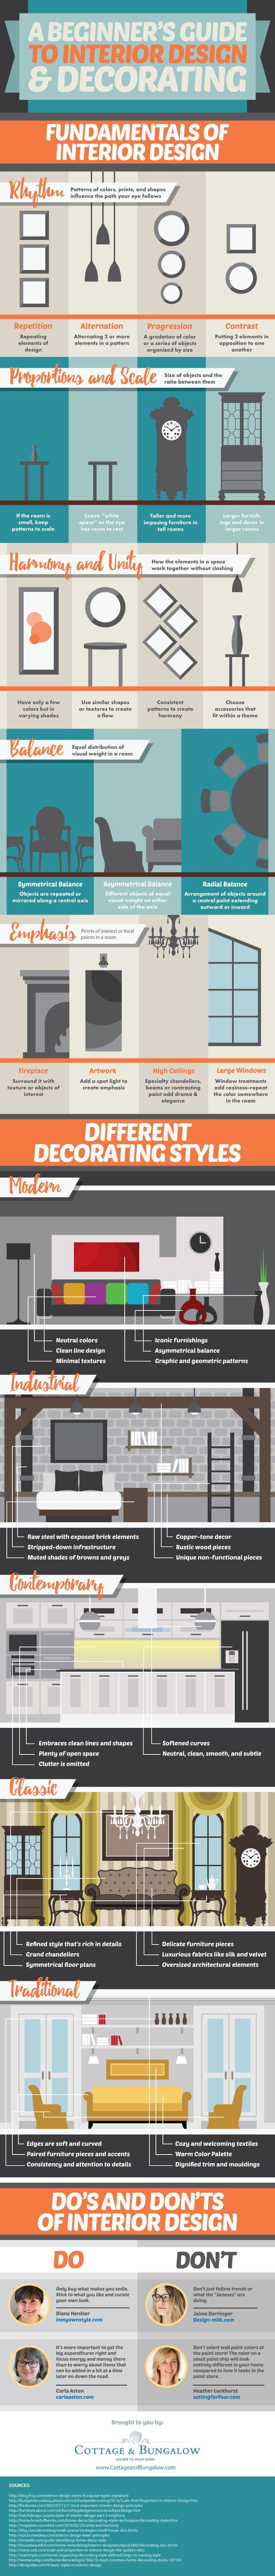 Best decor hacks awesome tips the beginner 39 s guide to interior design and decorating - Home interior designs hacks ...